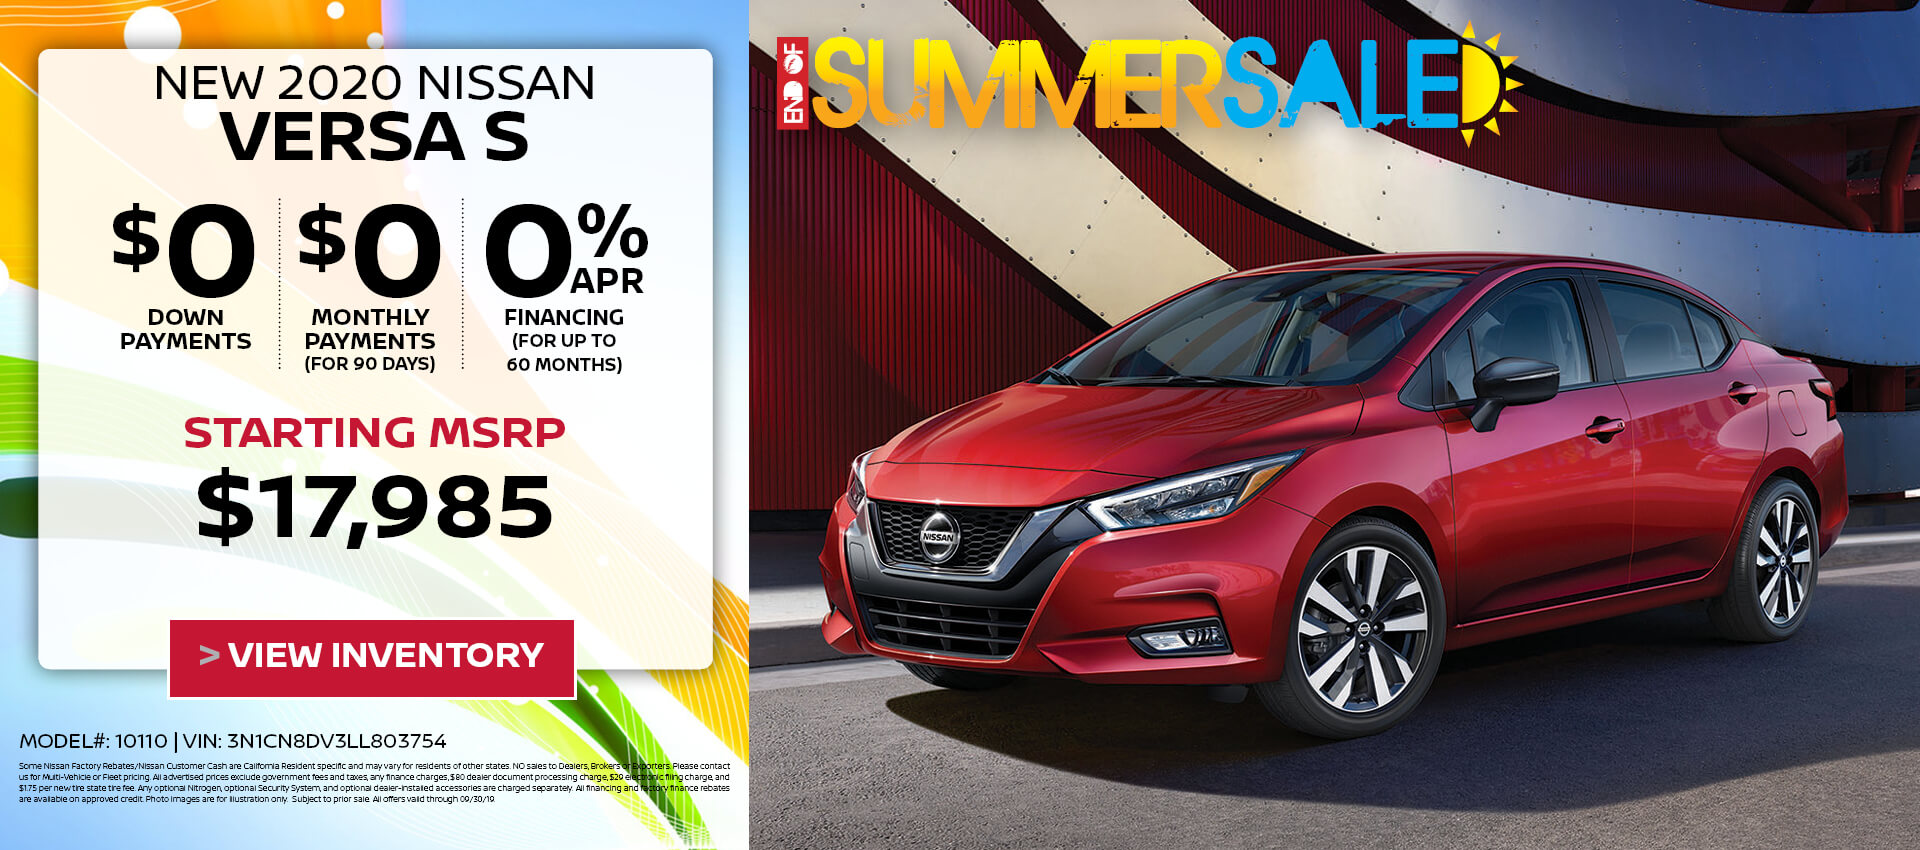 Nissan Dealer serving Temecula, Escondido, Oceanside & San